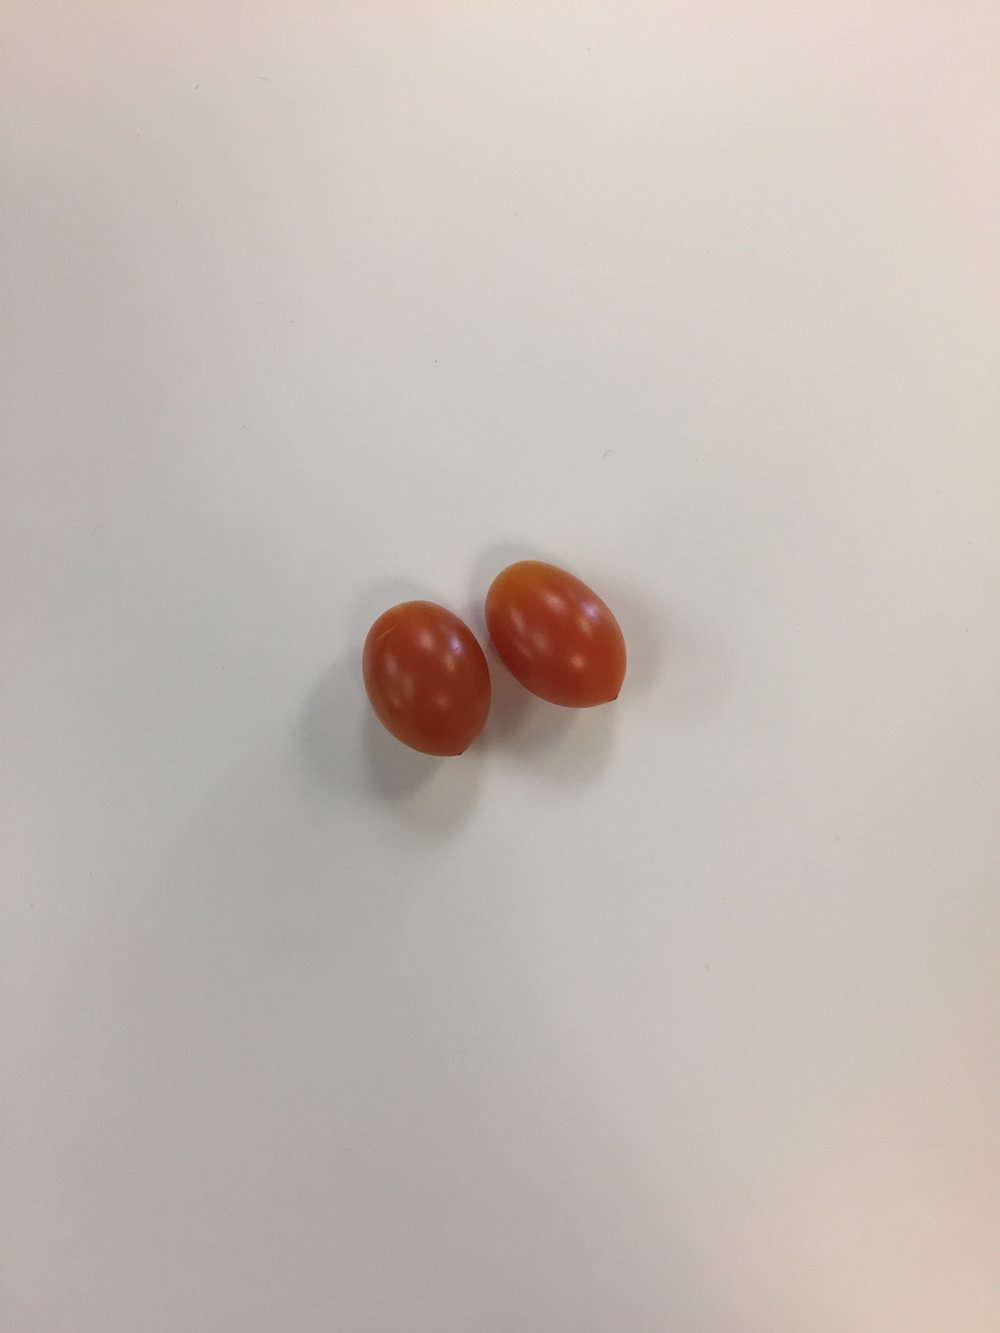 Two Grape Tomatoes